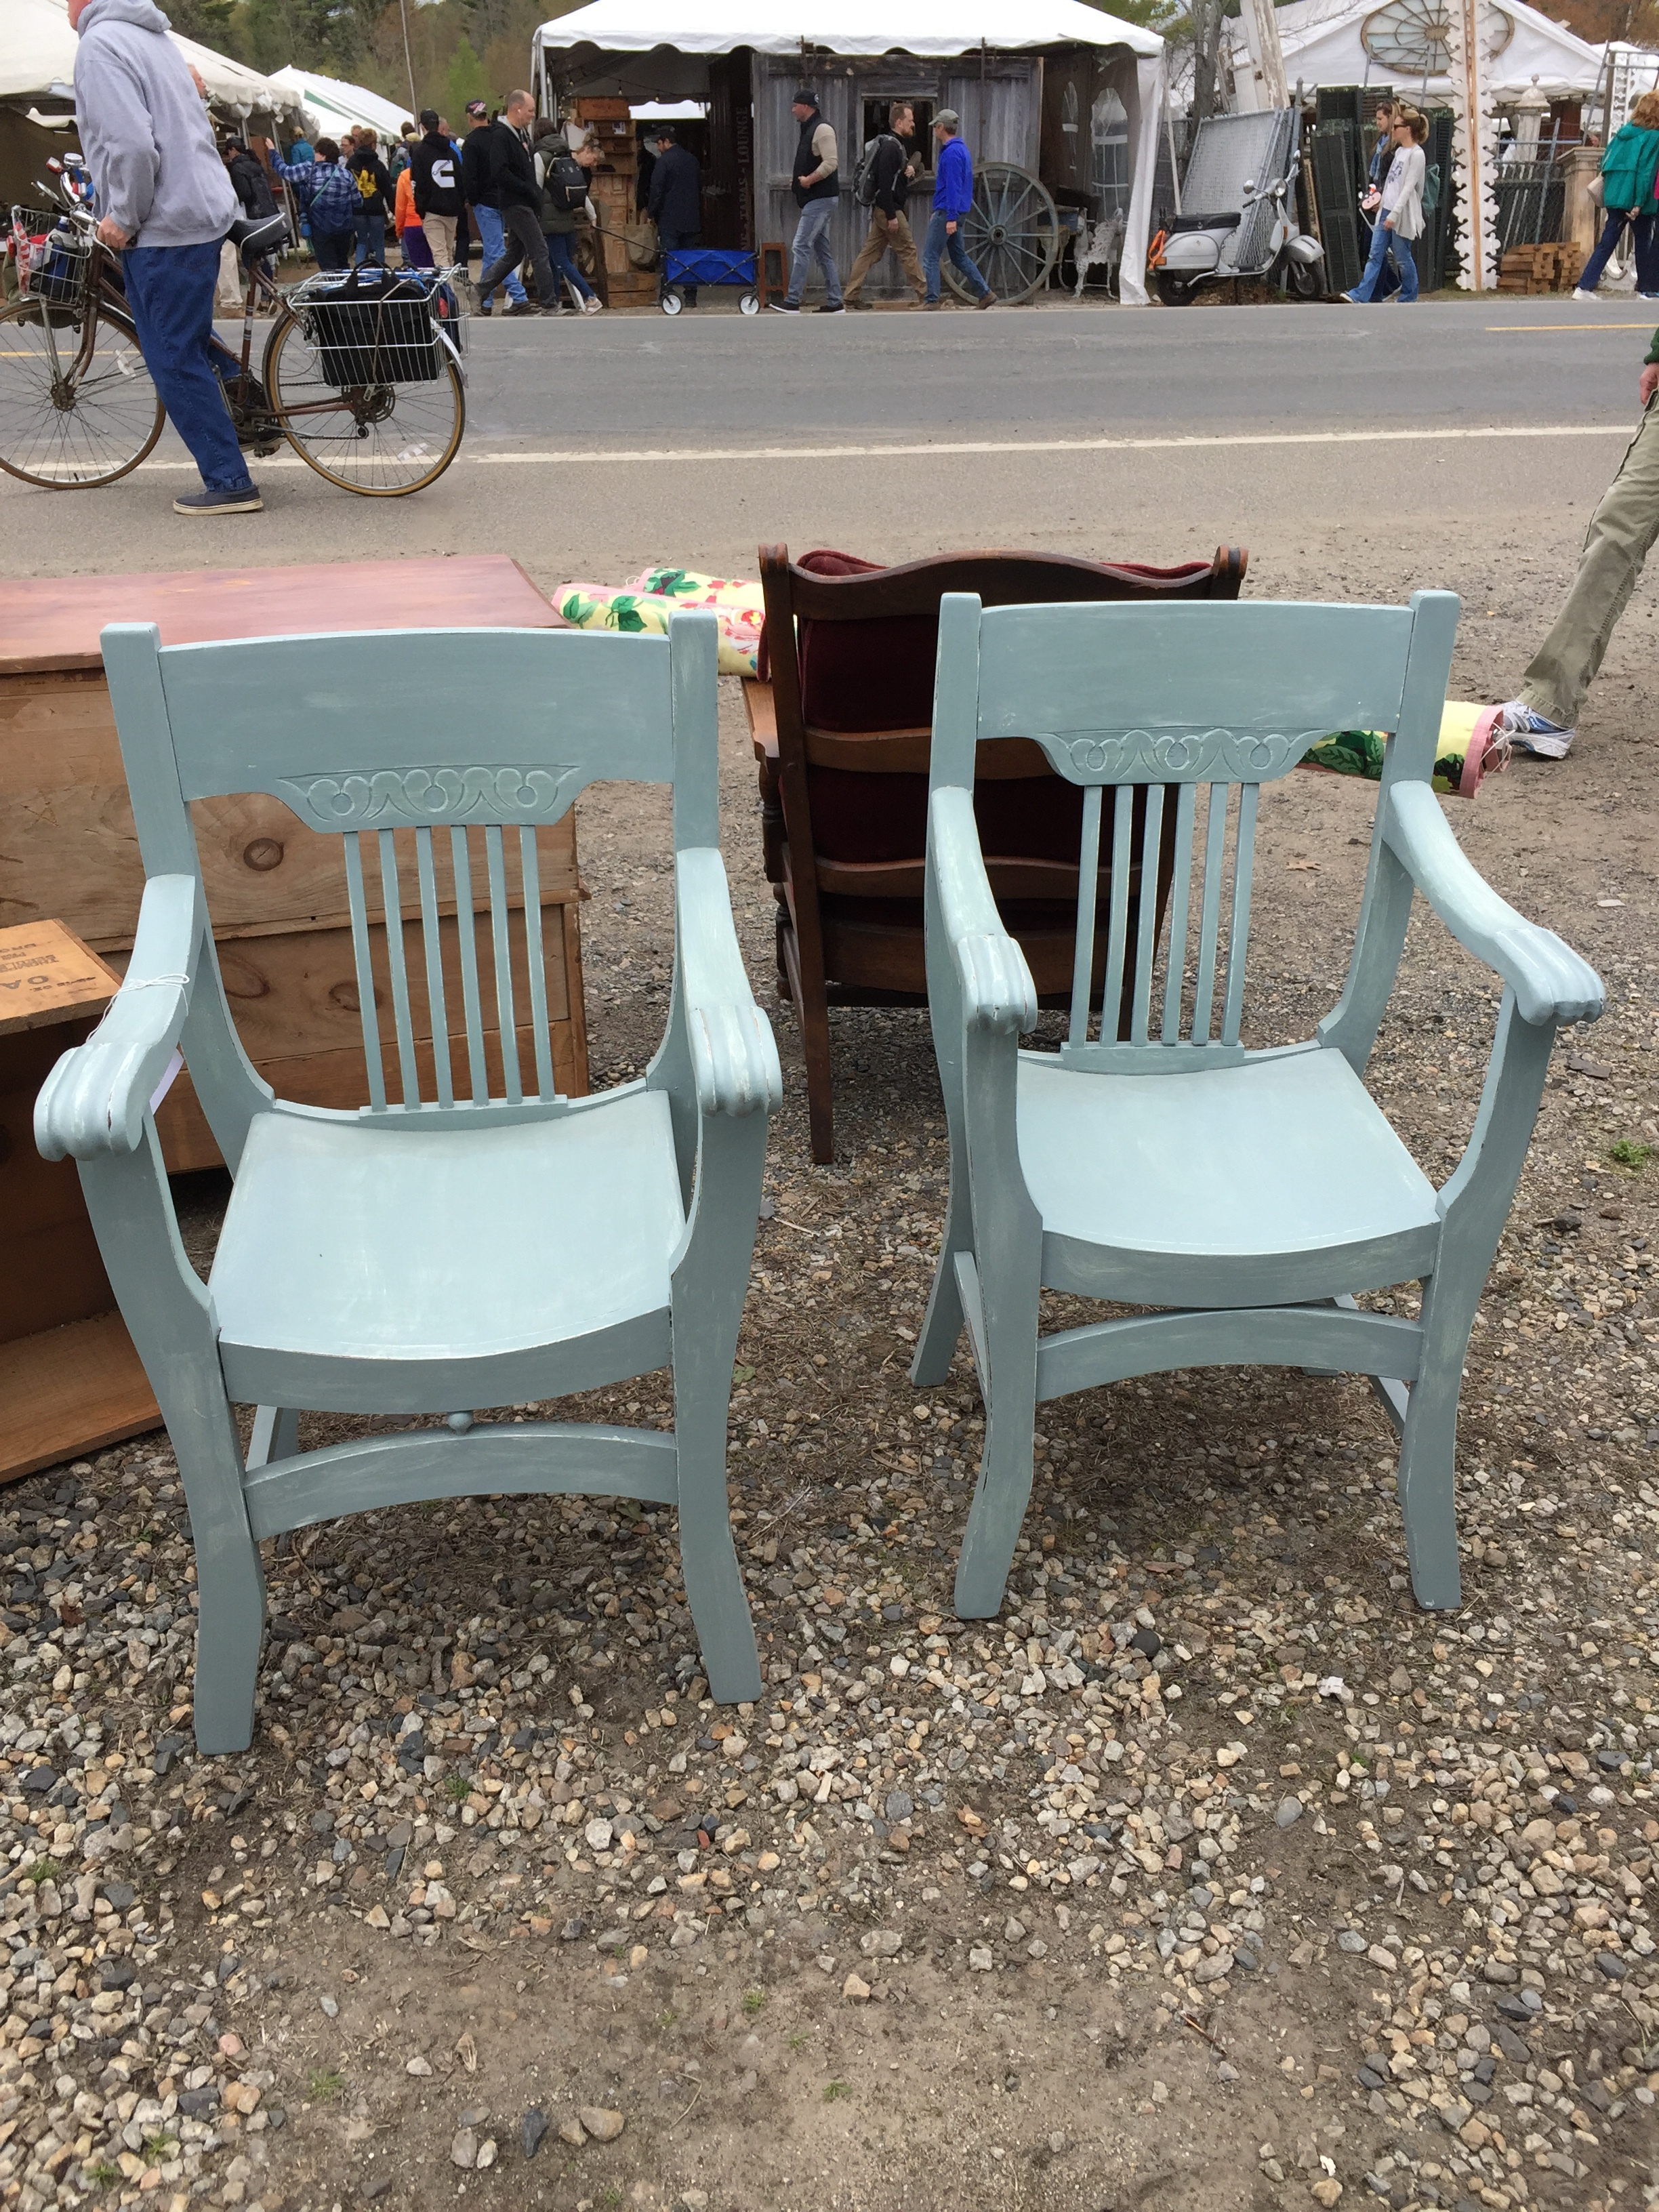 This pair of rustic carule inspired chairs were cute. Love the color.